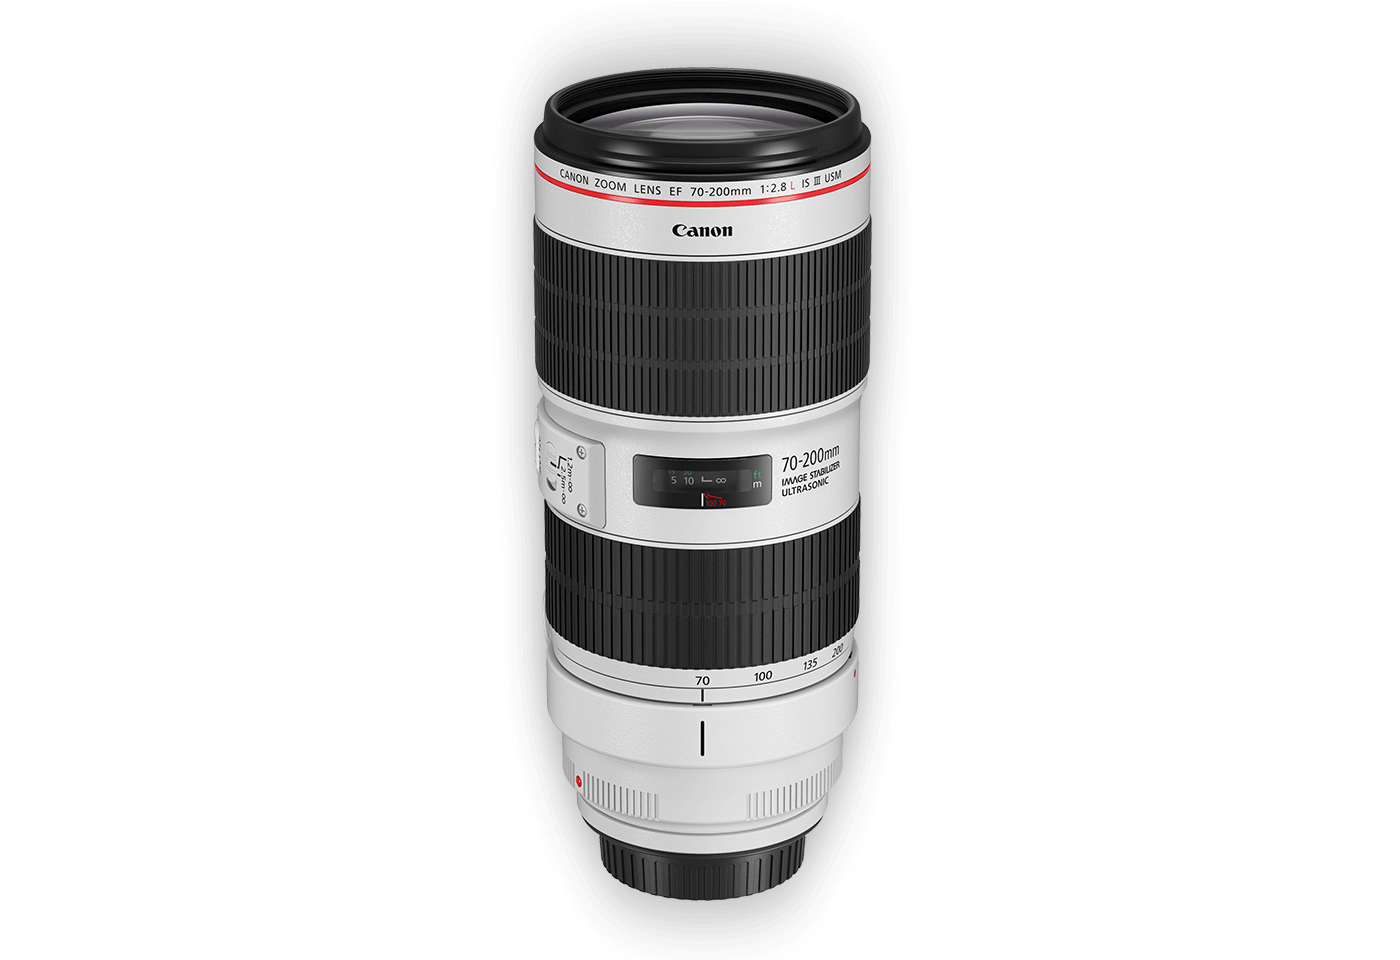 Product image of EF 70-200MM f/2.8L IS III USM